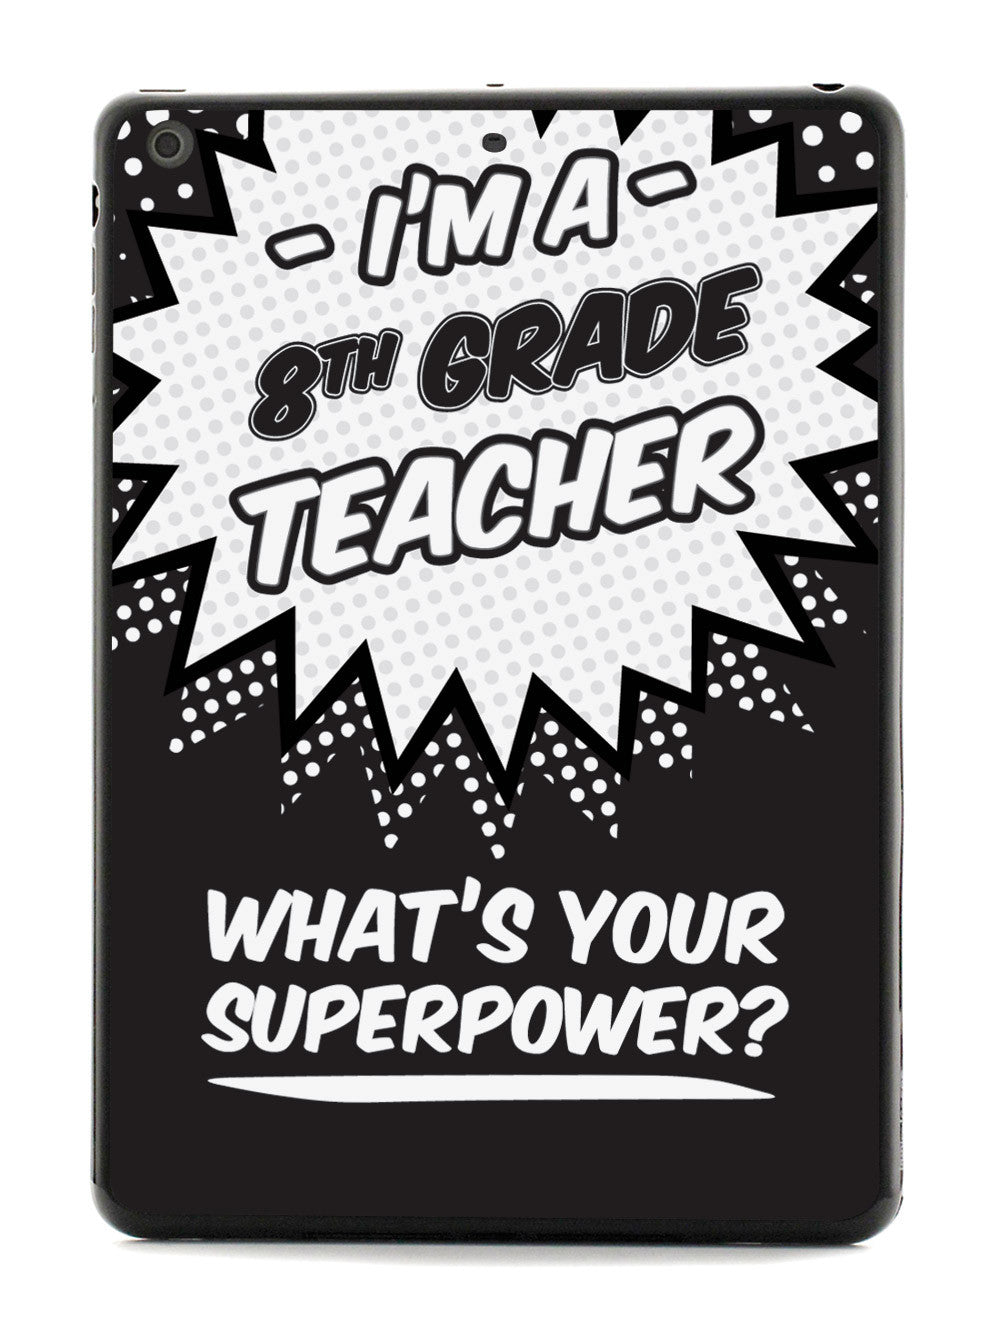 8th Grade Teacher - What's Your Superpower? Case